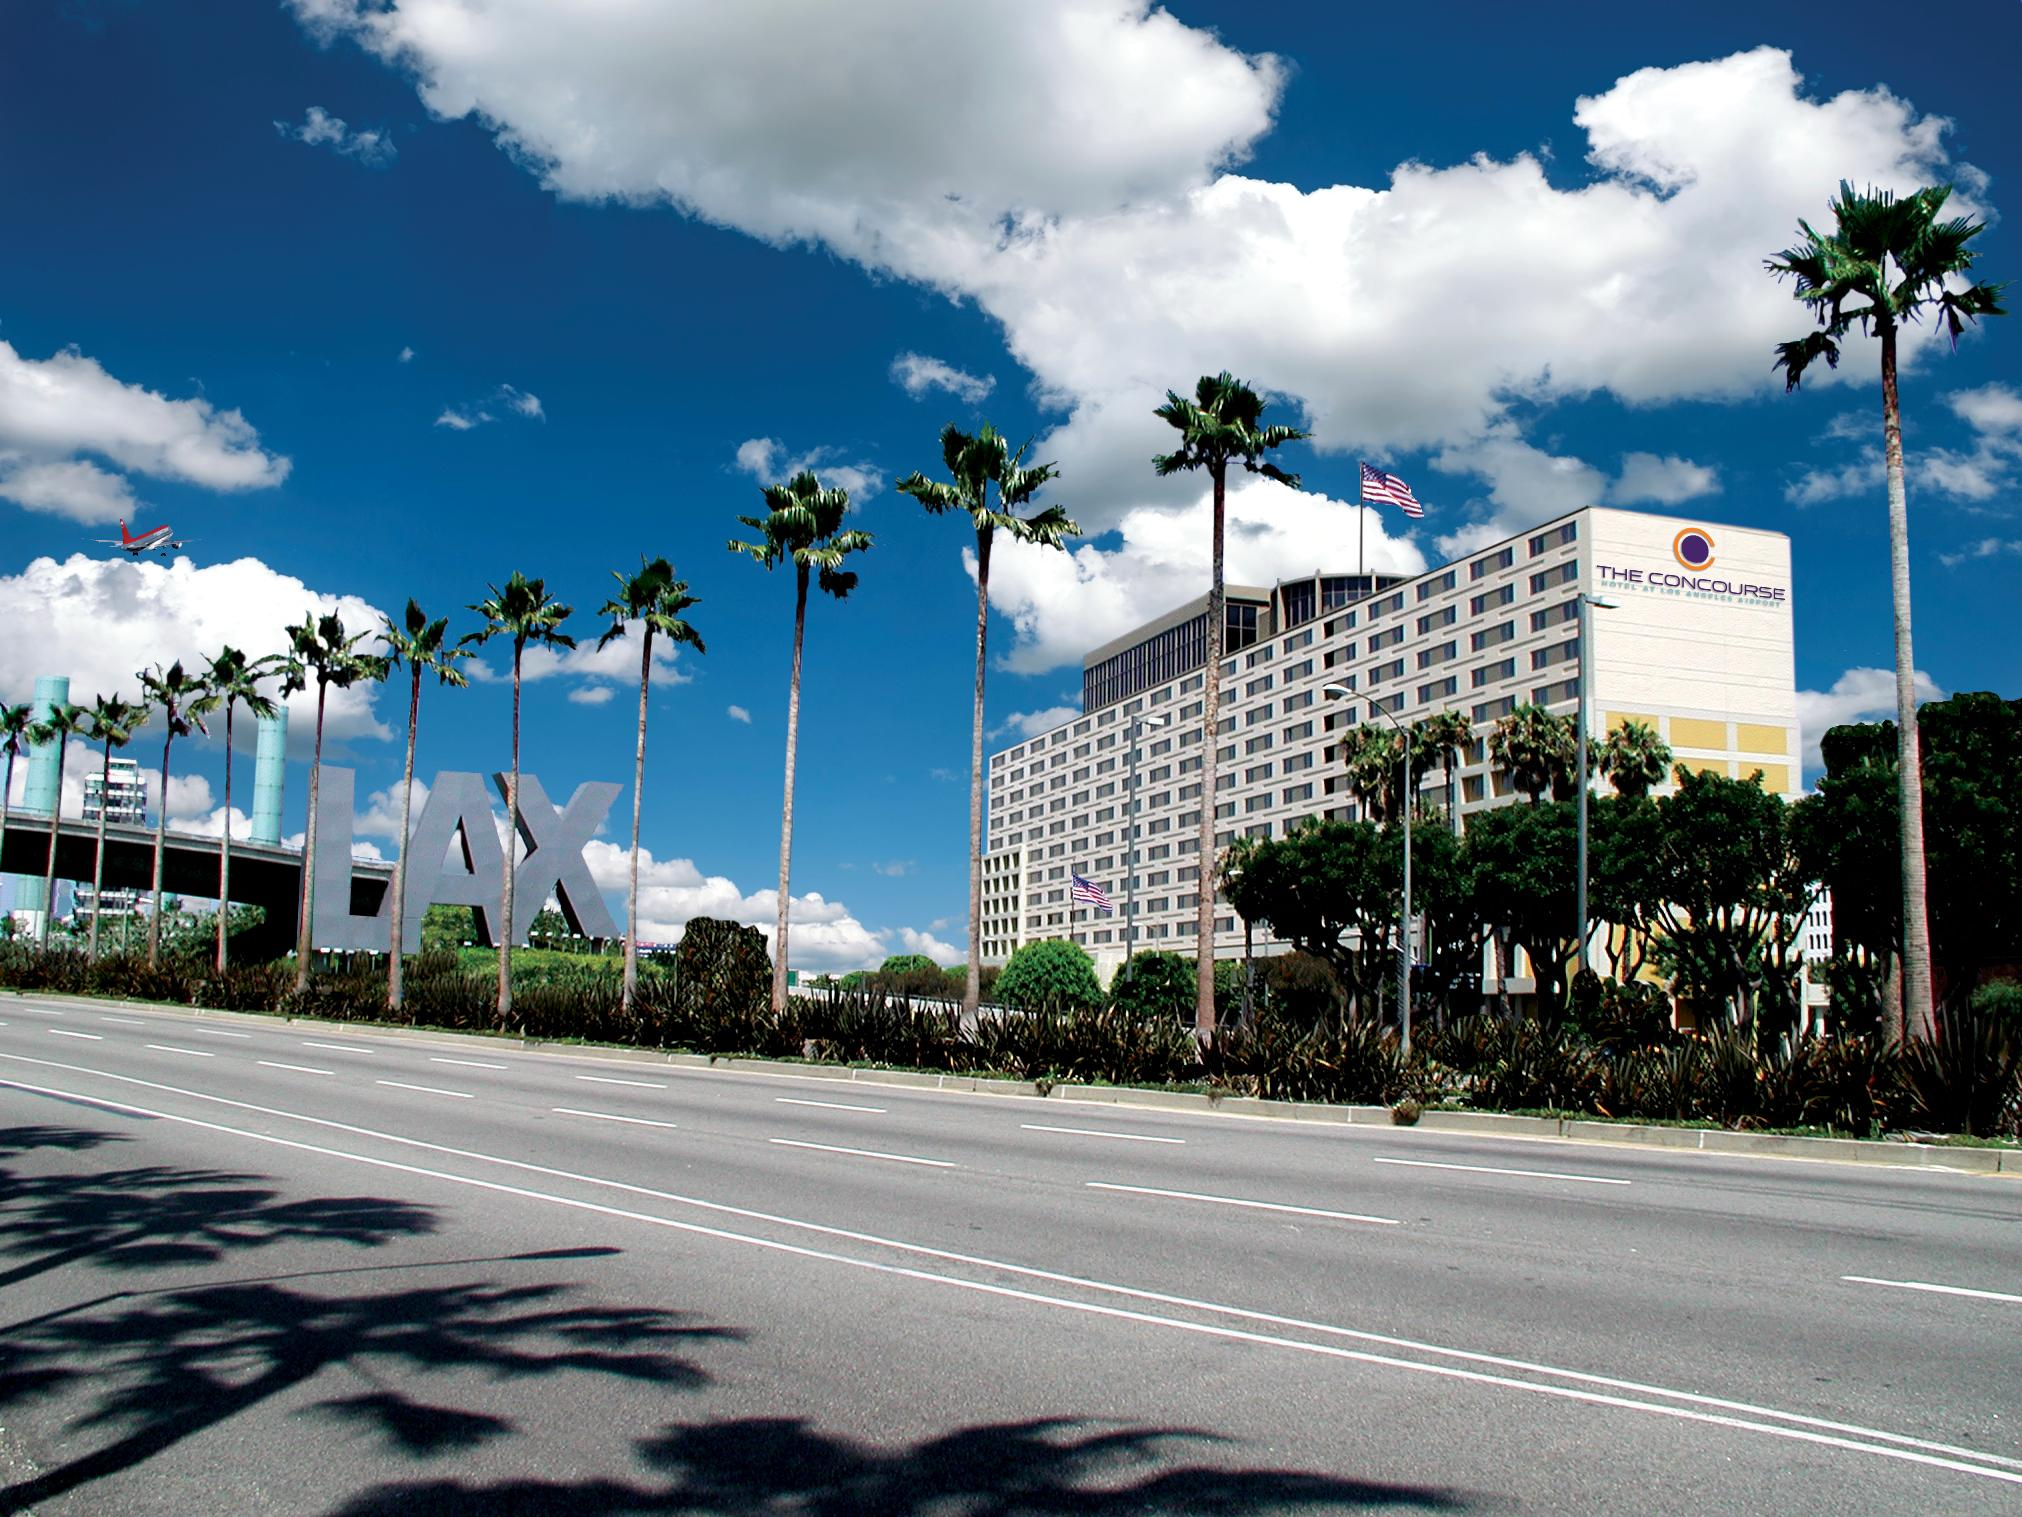 The Concourse Hotel at Los Angeles Airport - A Hyatt Affiliate